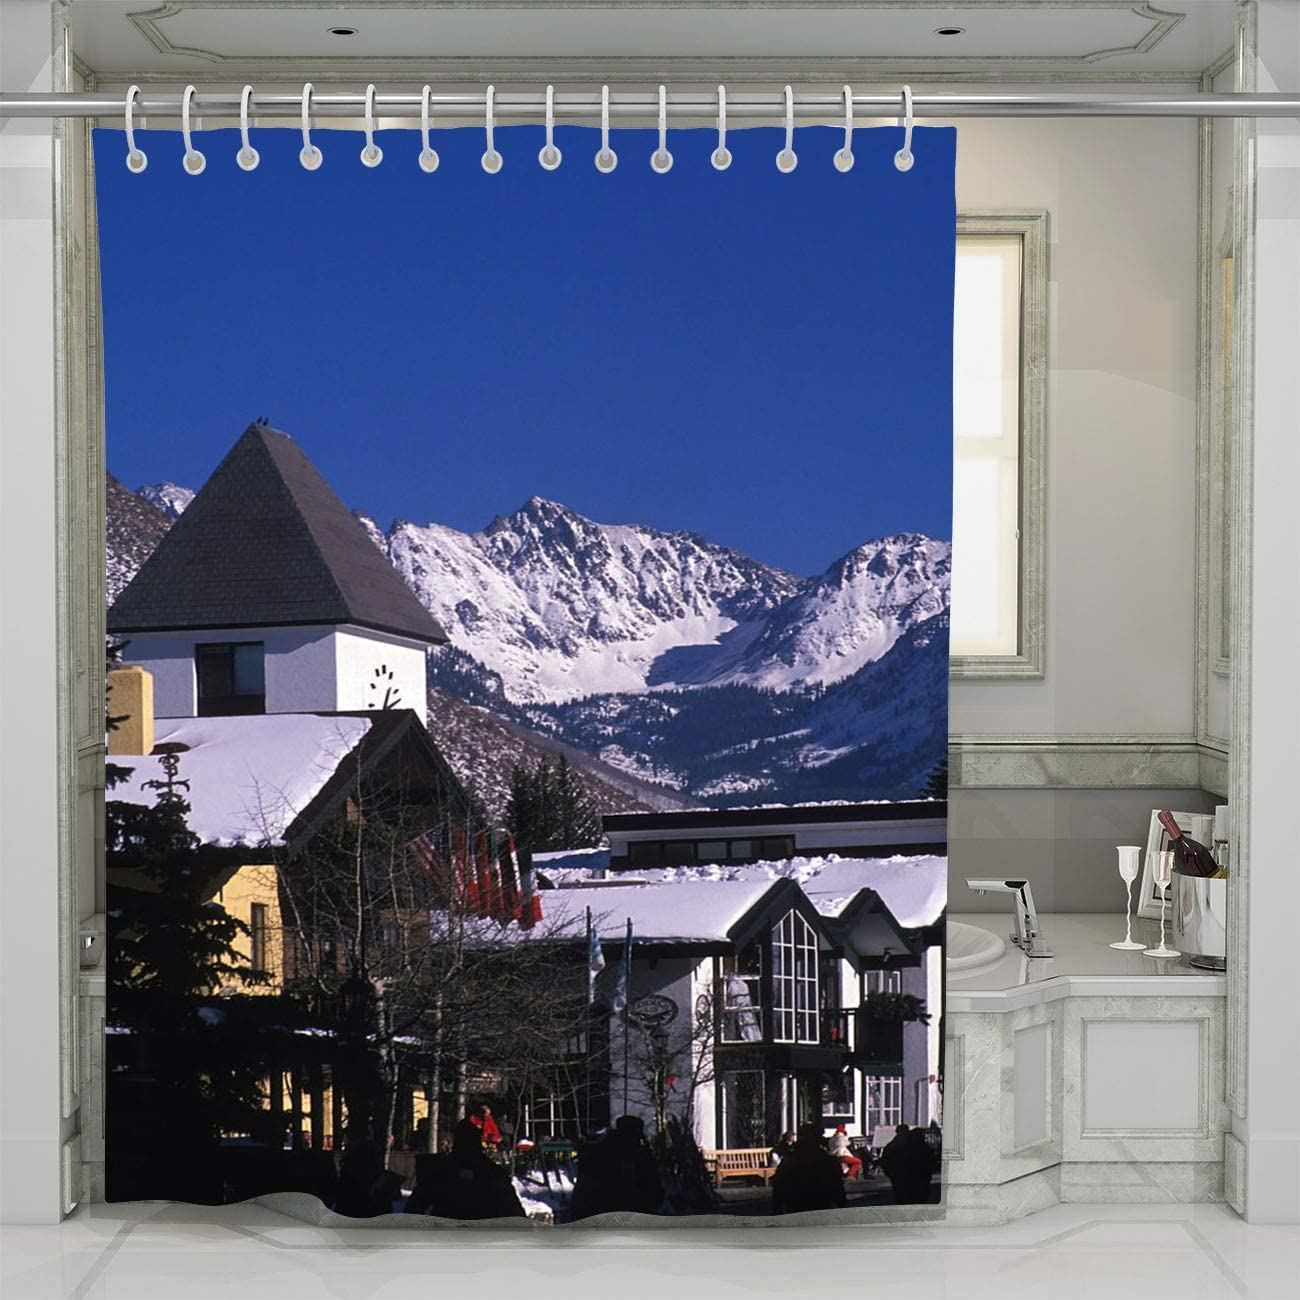 BEISISS Mountain Shower Curtain Vail Village and Gore Mountain Range in Winter Perfect for Bathroom Decor with Hooks,66Wx72L